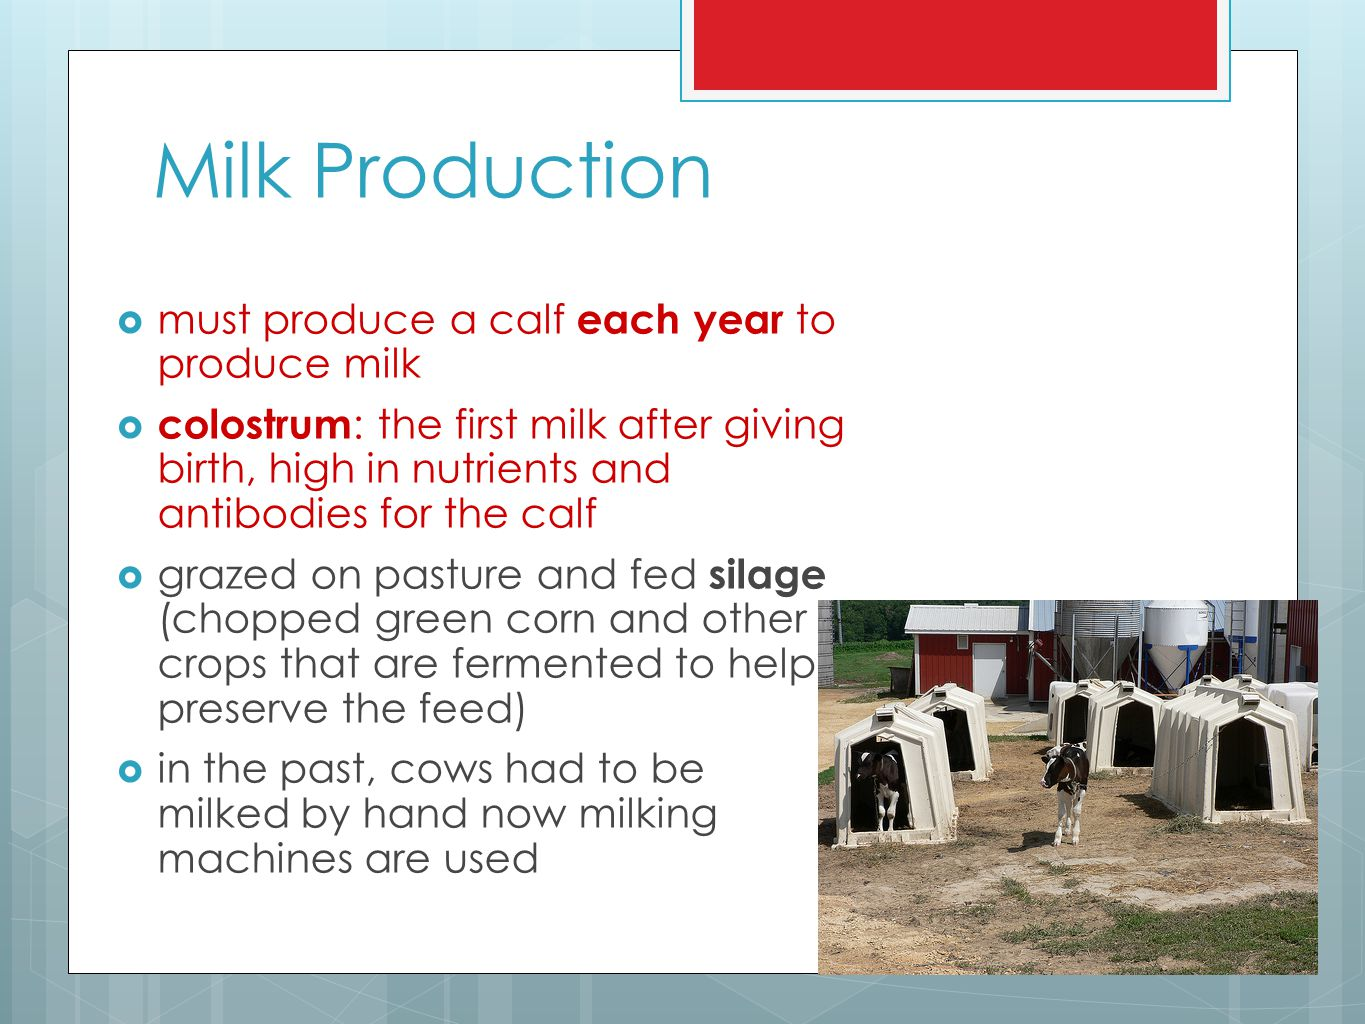 Milk Production must produce a calf each year to produce milk